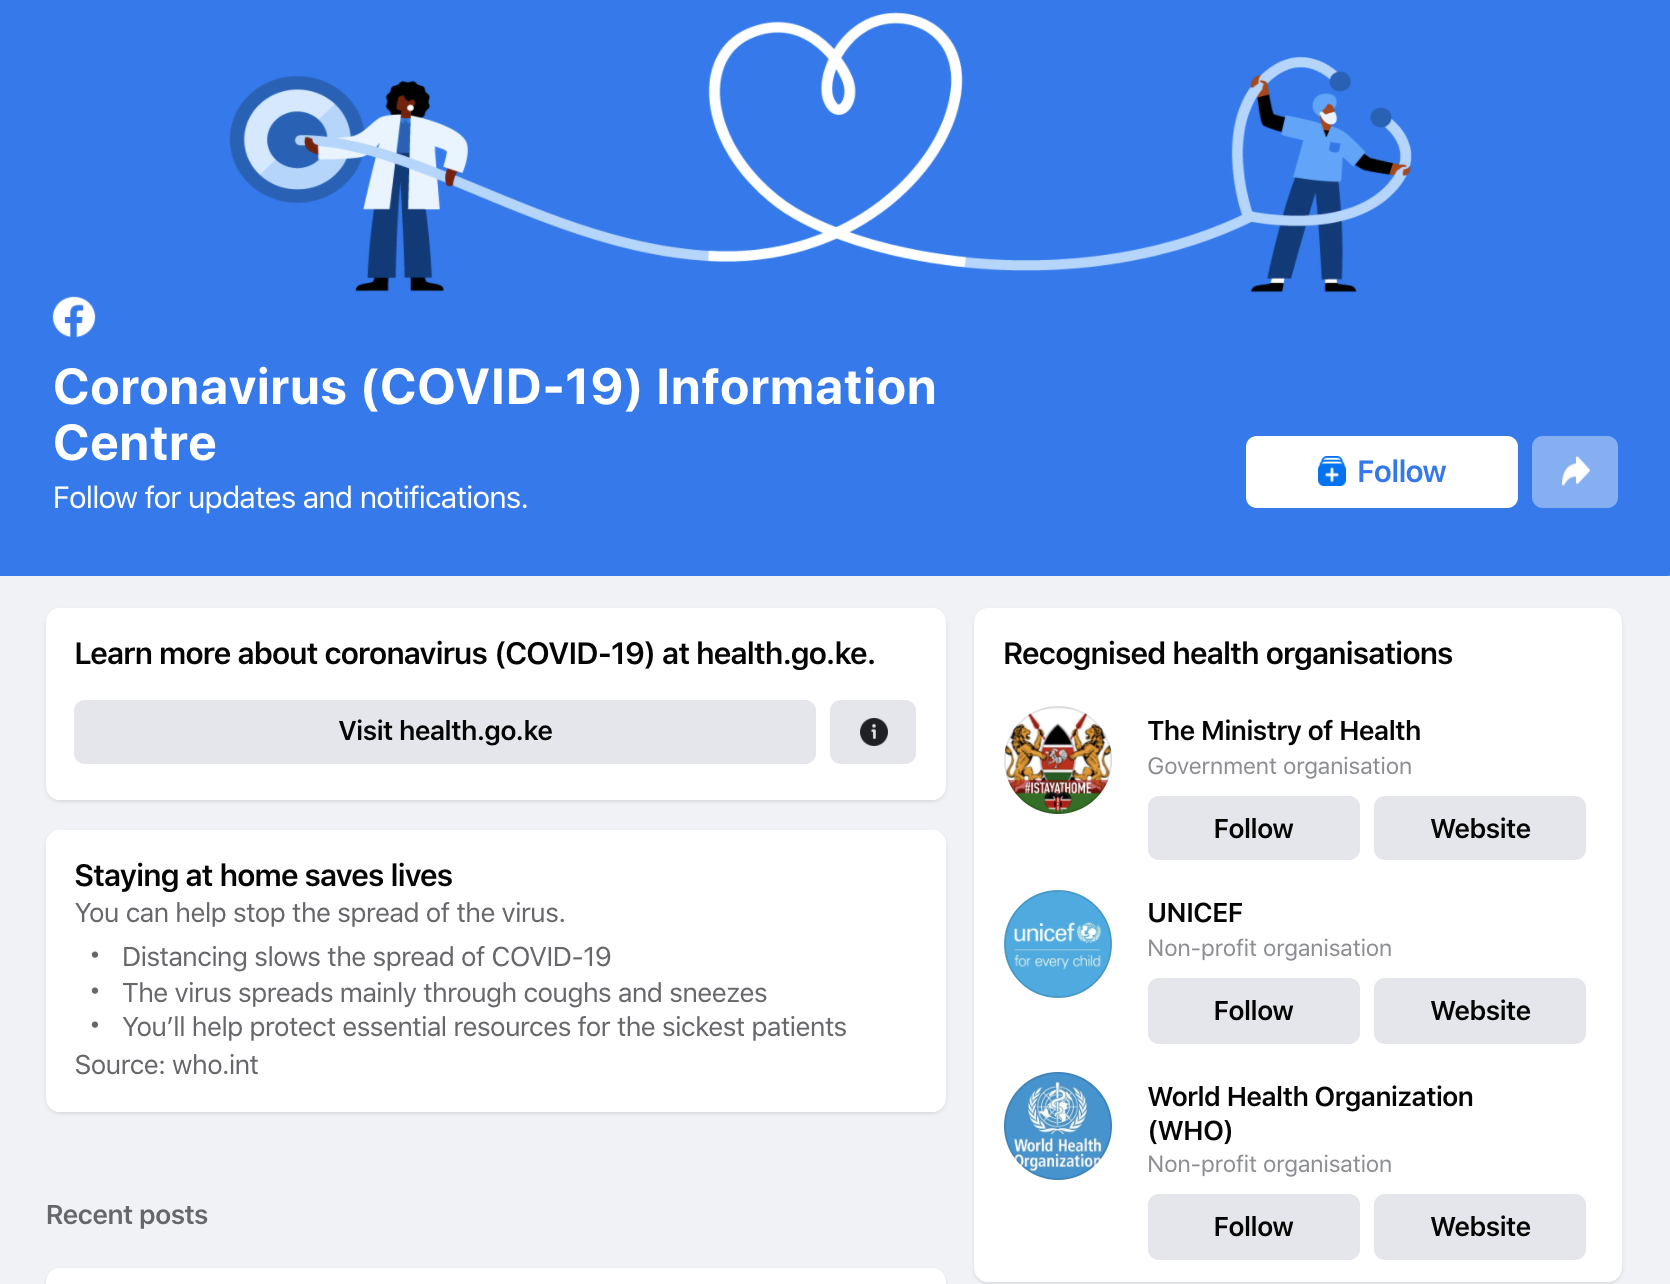 FB launches COVID-19 Information Center in 17 African countries